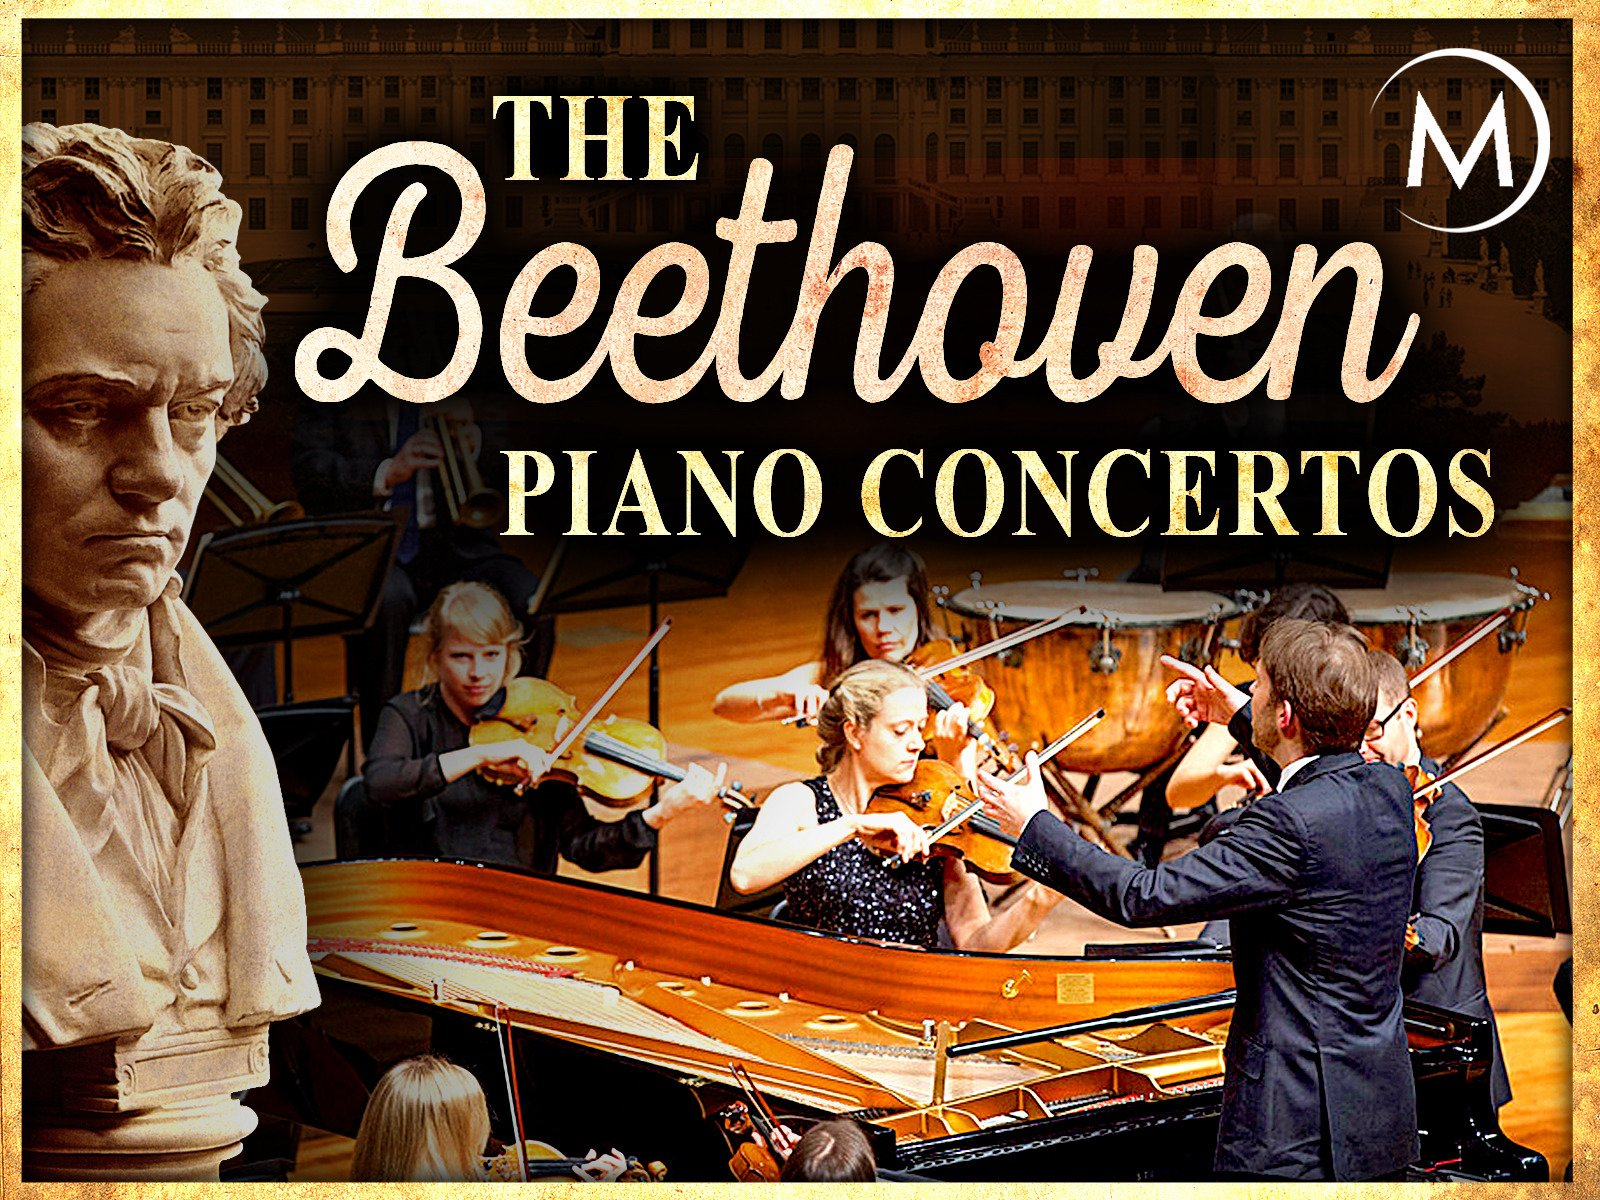 The Beethoven Piano Concertos - Season 1